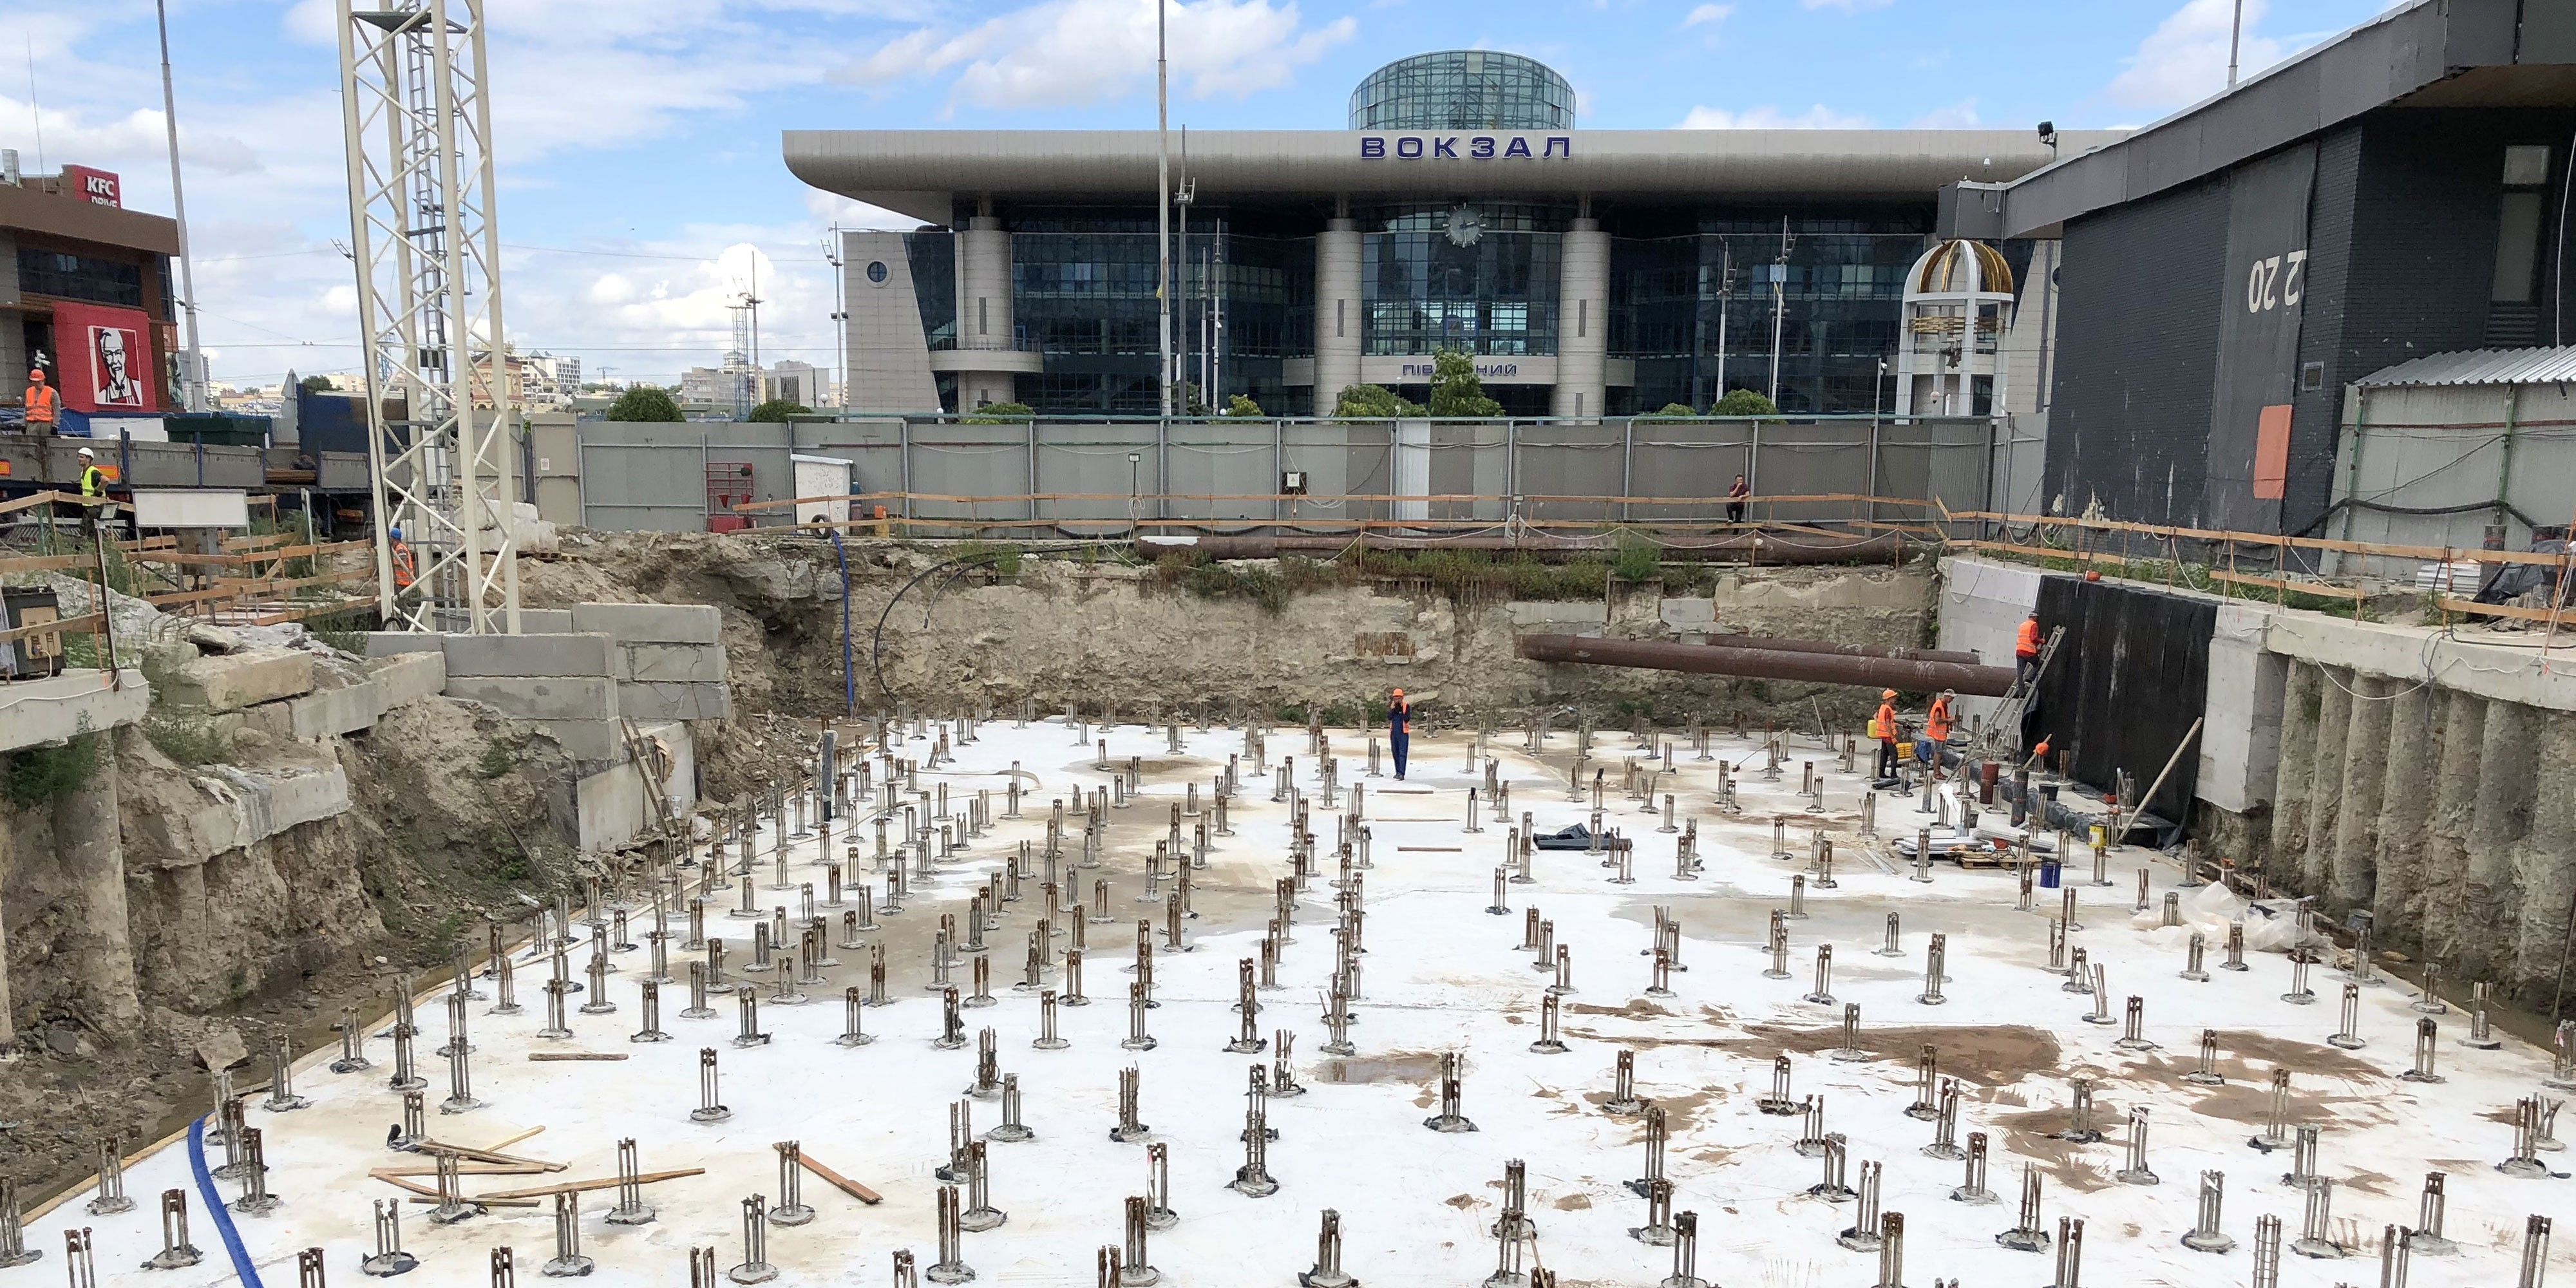 CONSTRUCTION PROGRESS S1 TERMINAL. AUGUST 2020